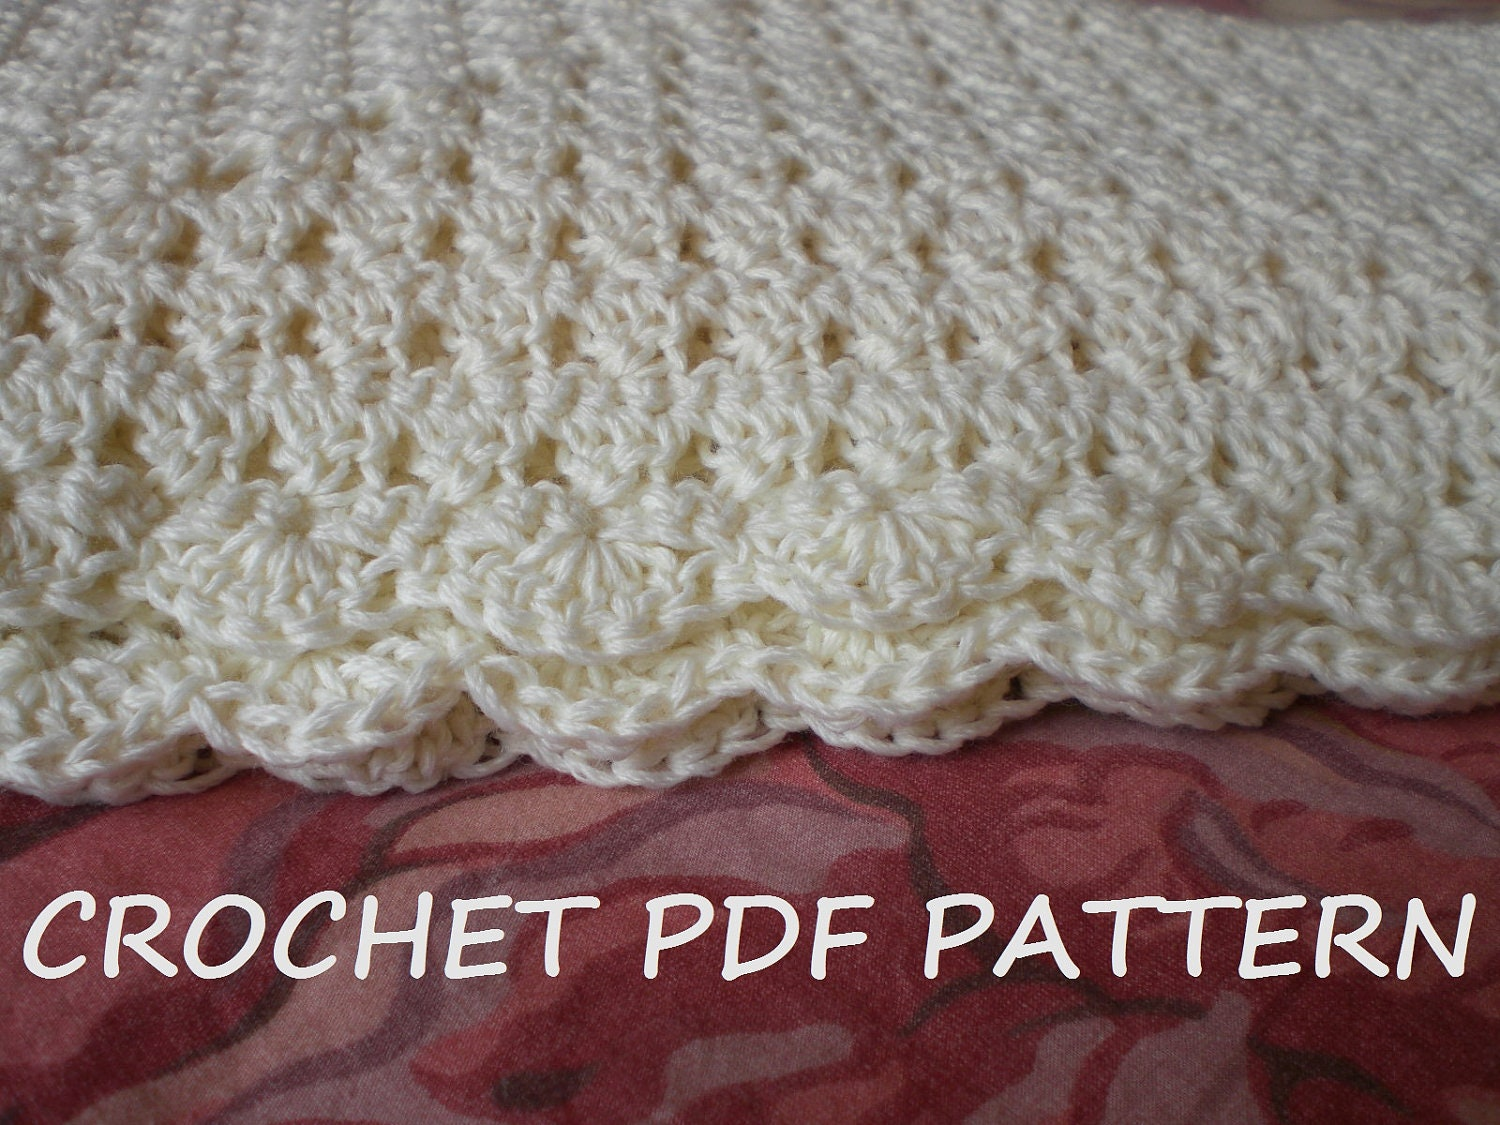 Crochet Stitches In Pdf : Crochet Baby Blanket Pattern. PDF 020. by vivartshop on Etsy